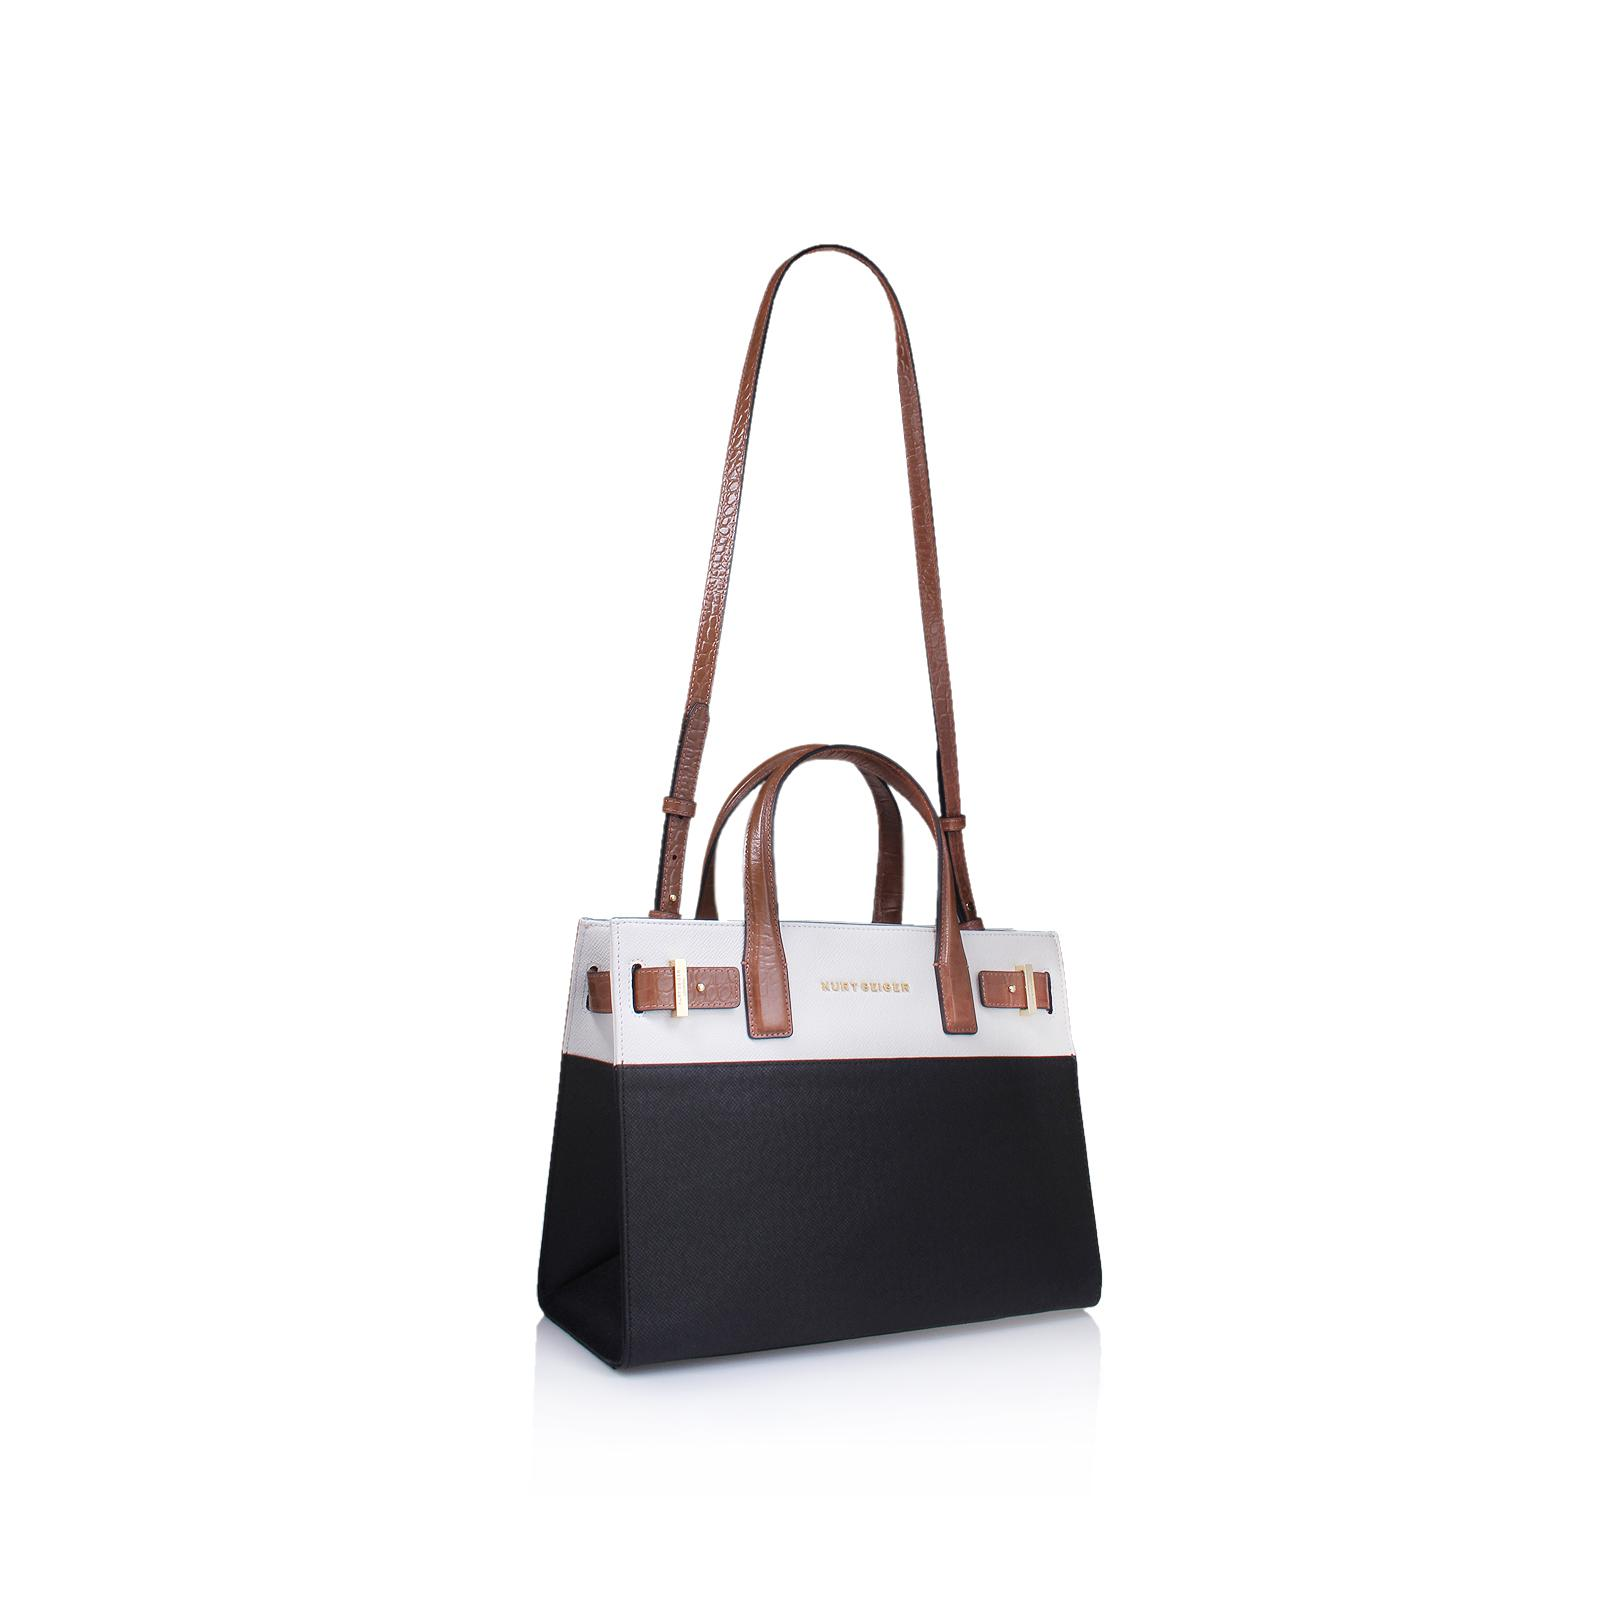 Kurt Geiger Leather New Saffiano London Tote In Black Combination